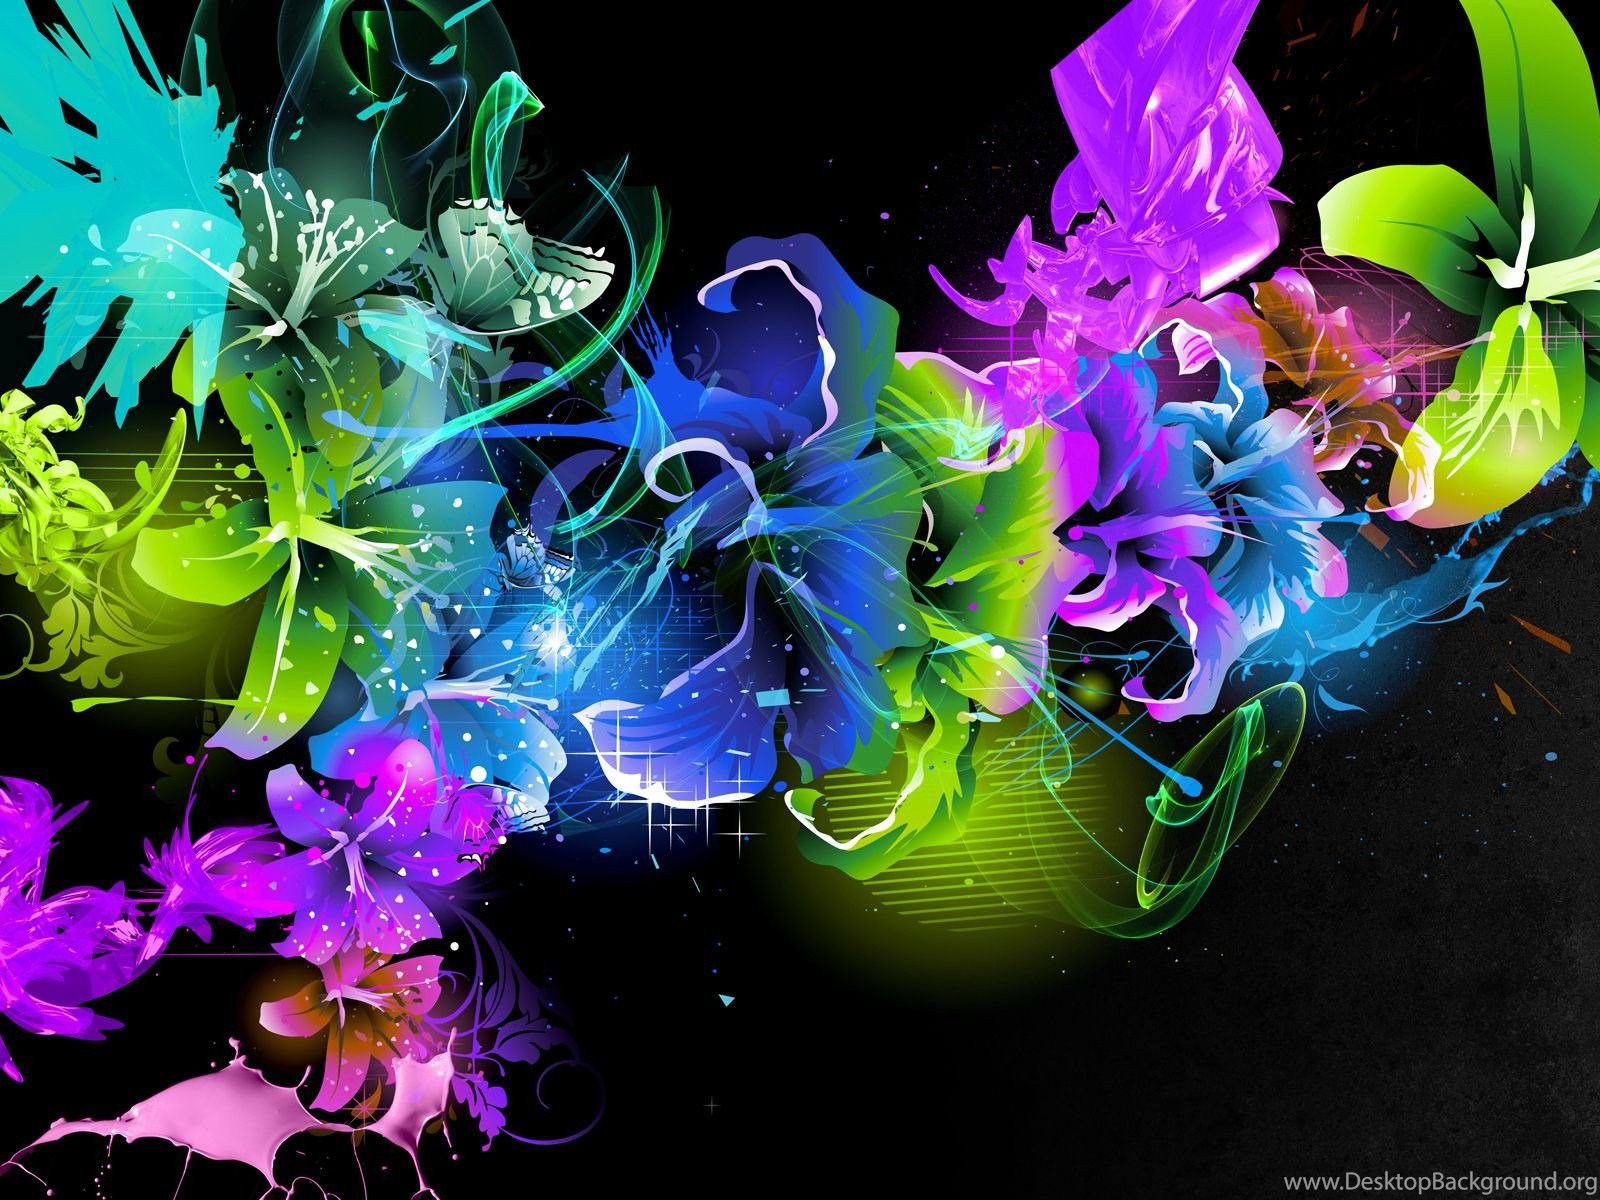 Free Colorful Flower Wallpaper Downloads: Colorful Flower Backgrounds Hd Backgrounds Desktop Background